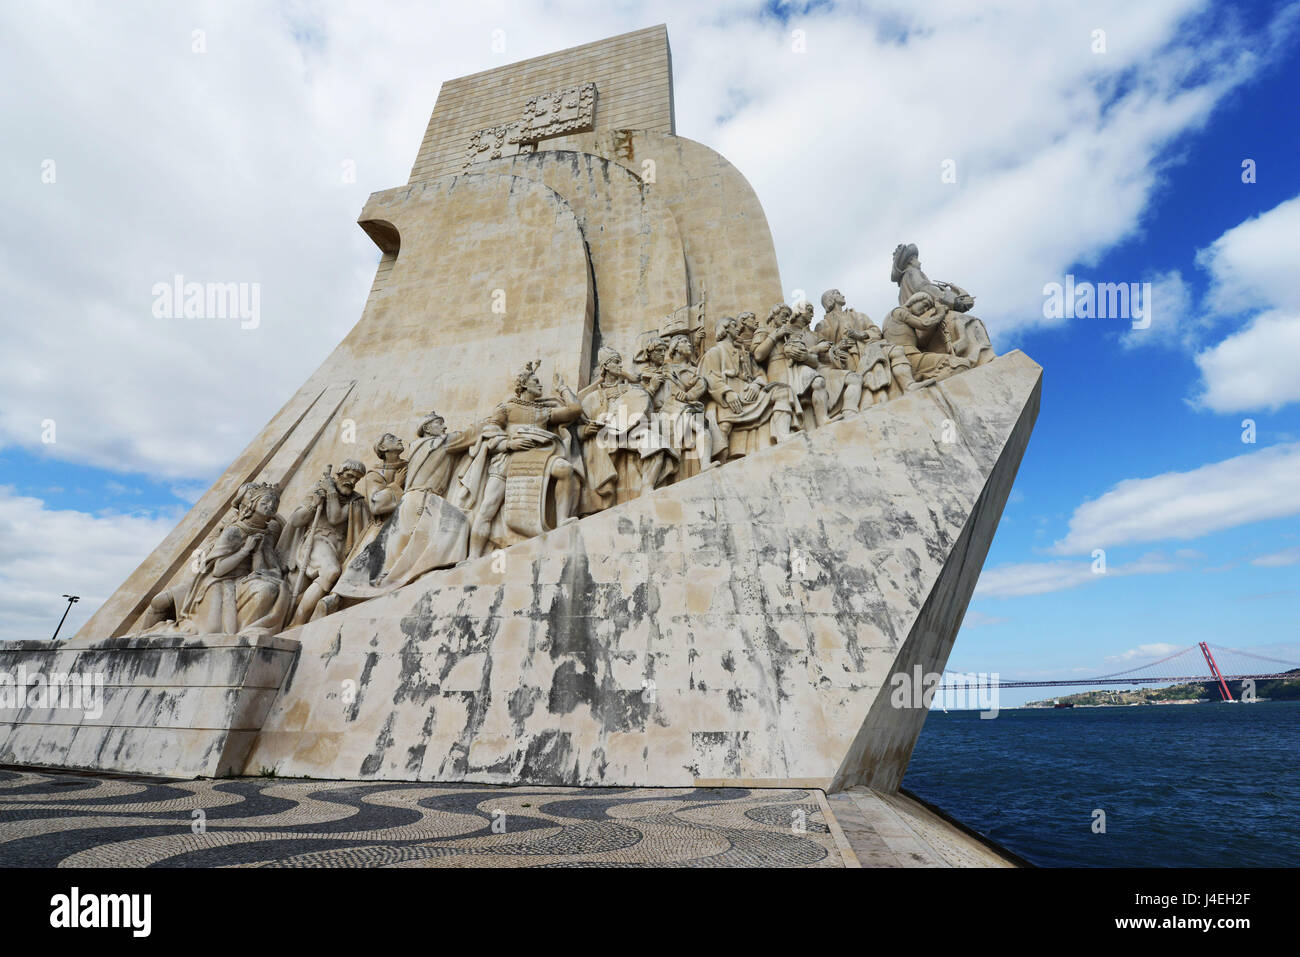 Monument to the Discoveries beside the Tagus River, Belem, Lisbon, Portugal. - Stock Image